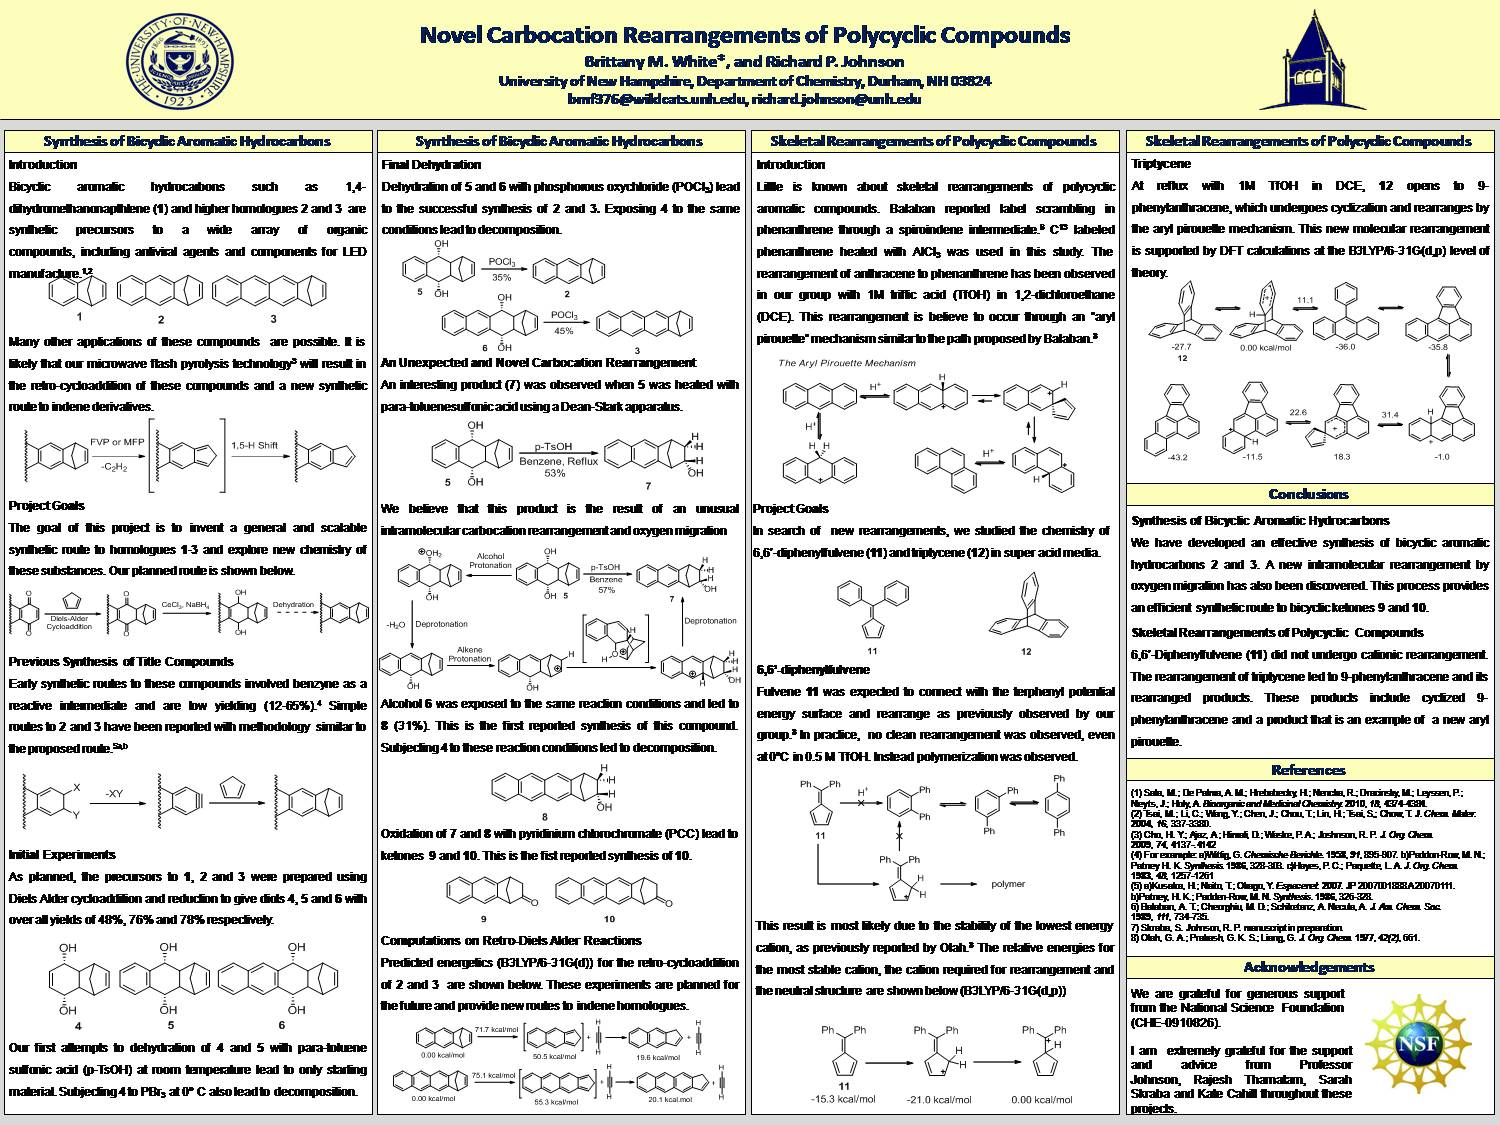 Novel Carbocation Rearrangements Of Polycyclic Compounds by bmf376